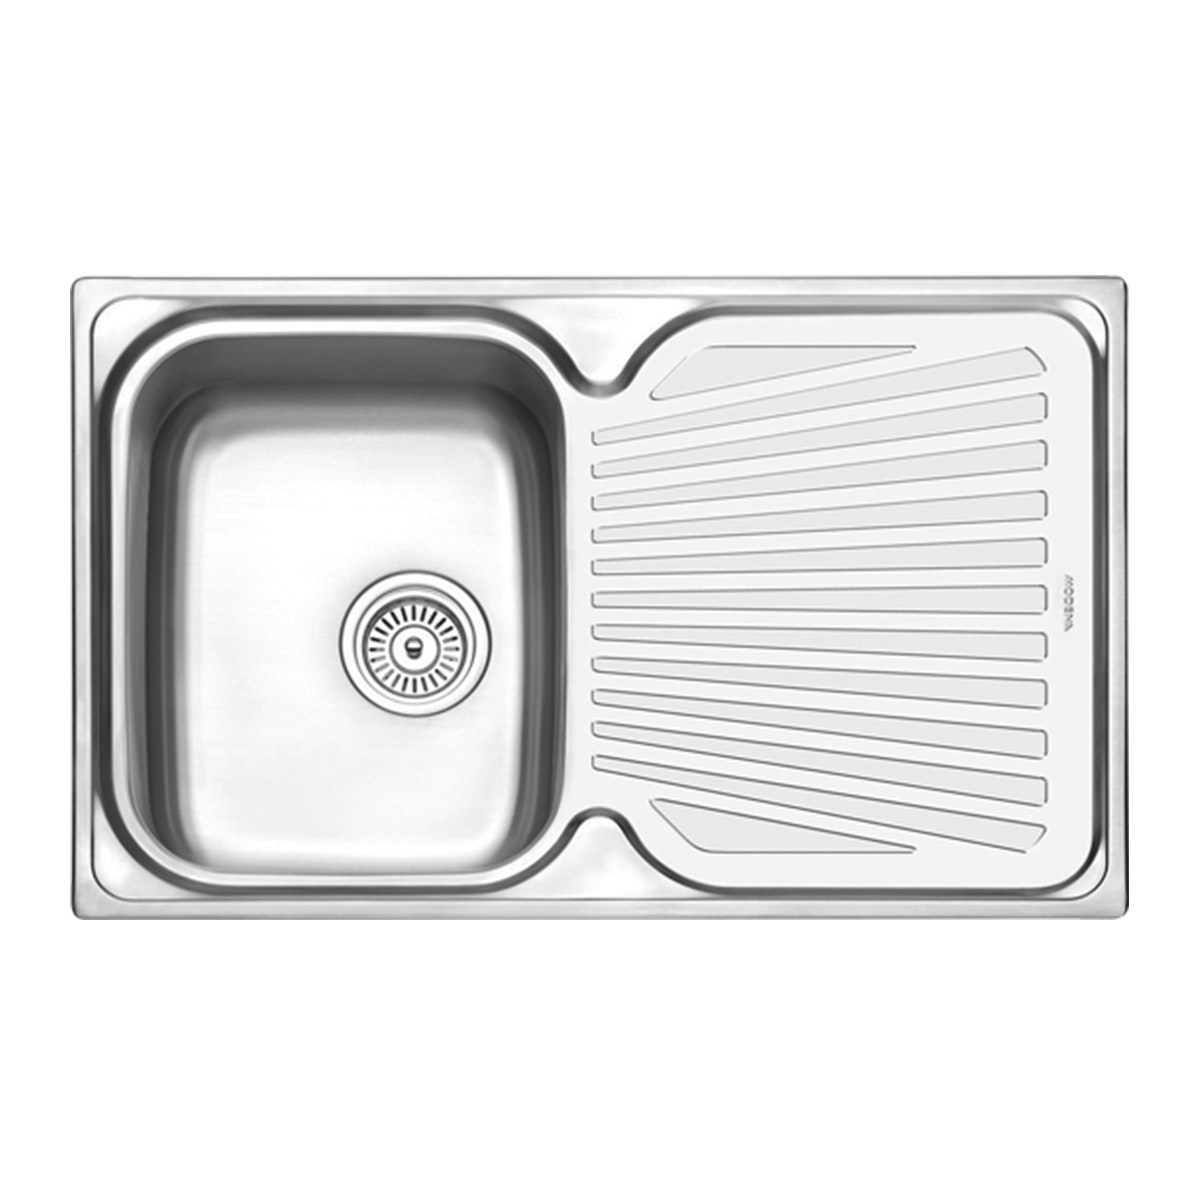 Modena Kitchen Sink 1 Bak 1 Drainer LUGANO KS 4101